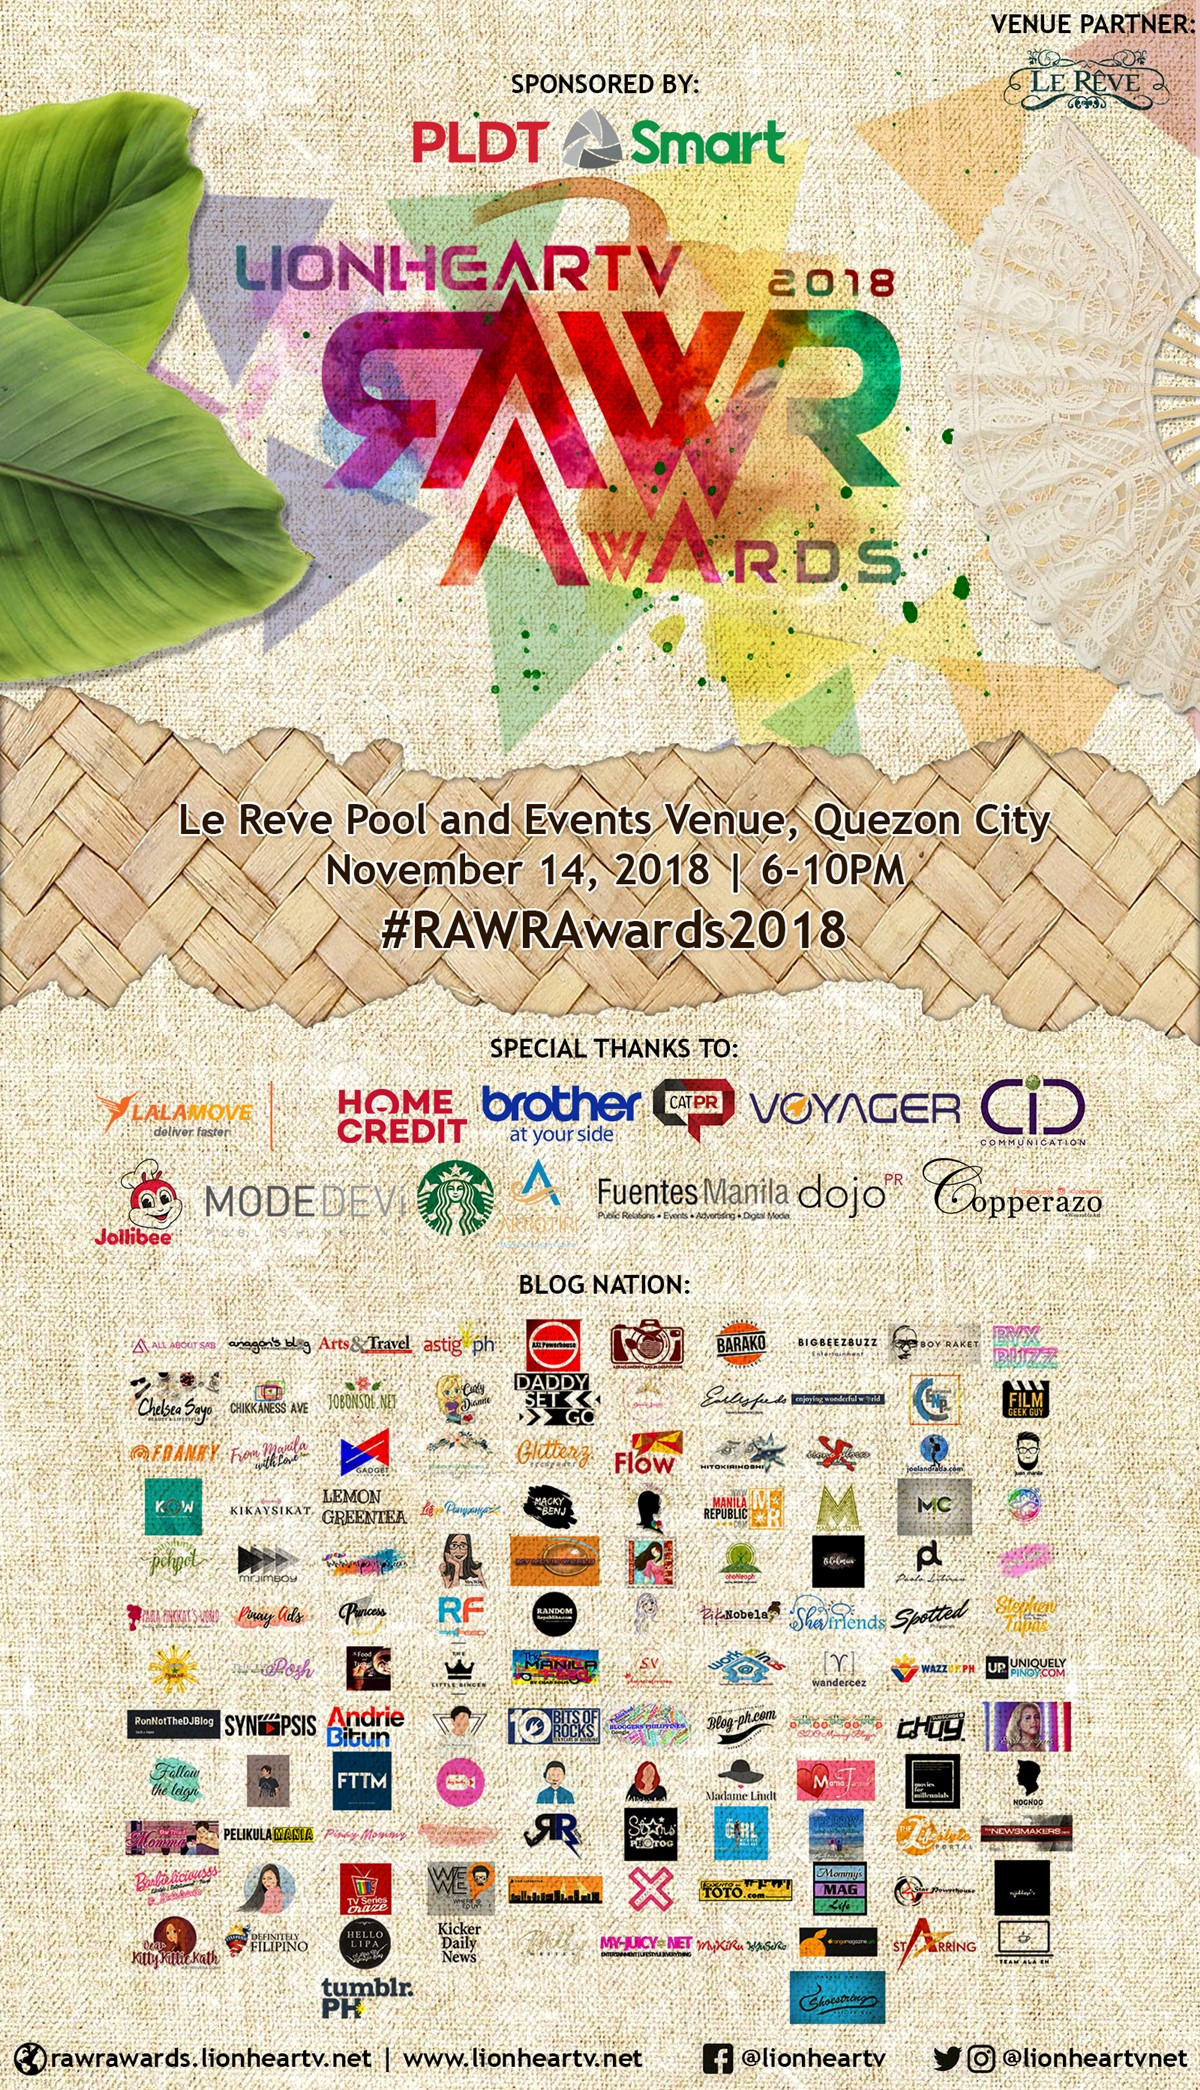 RAWR Awards 2018 poster updated 10-19-18